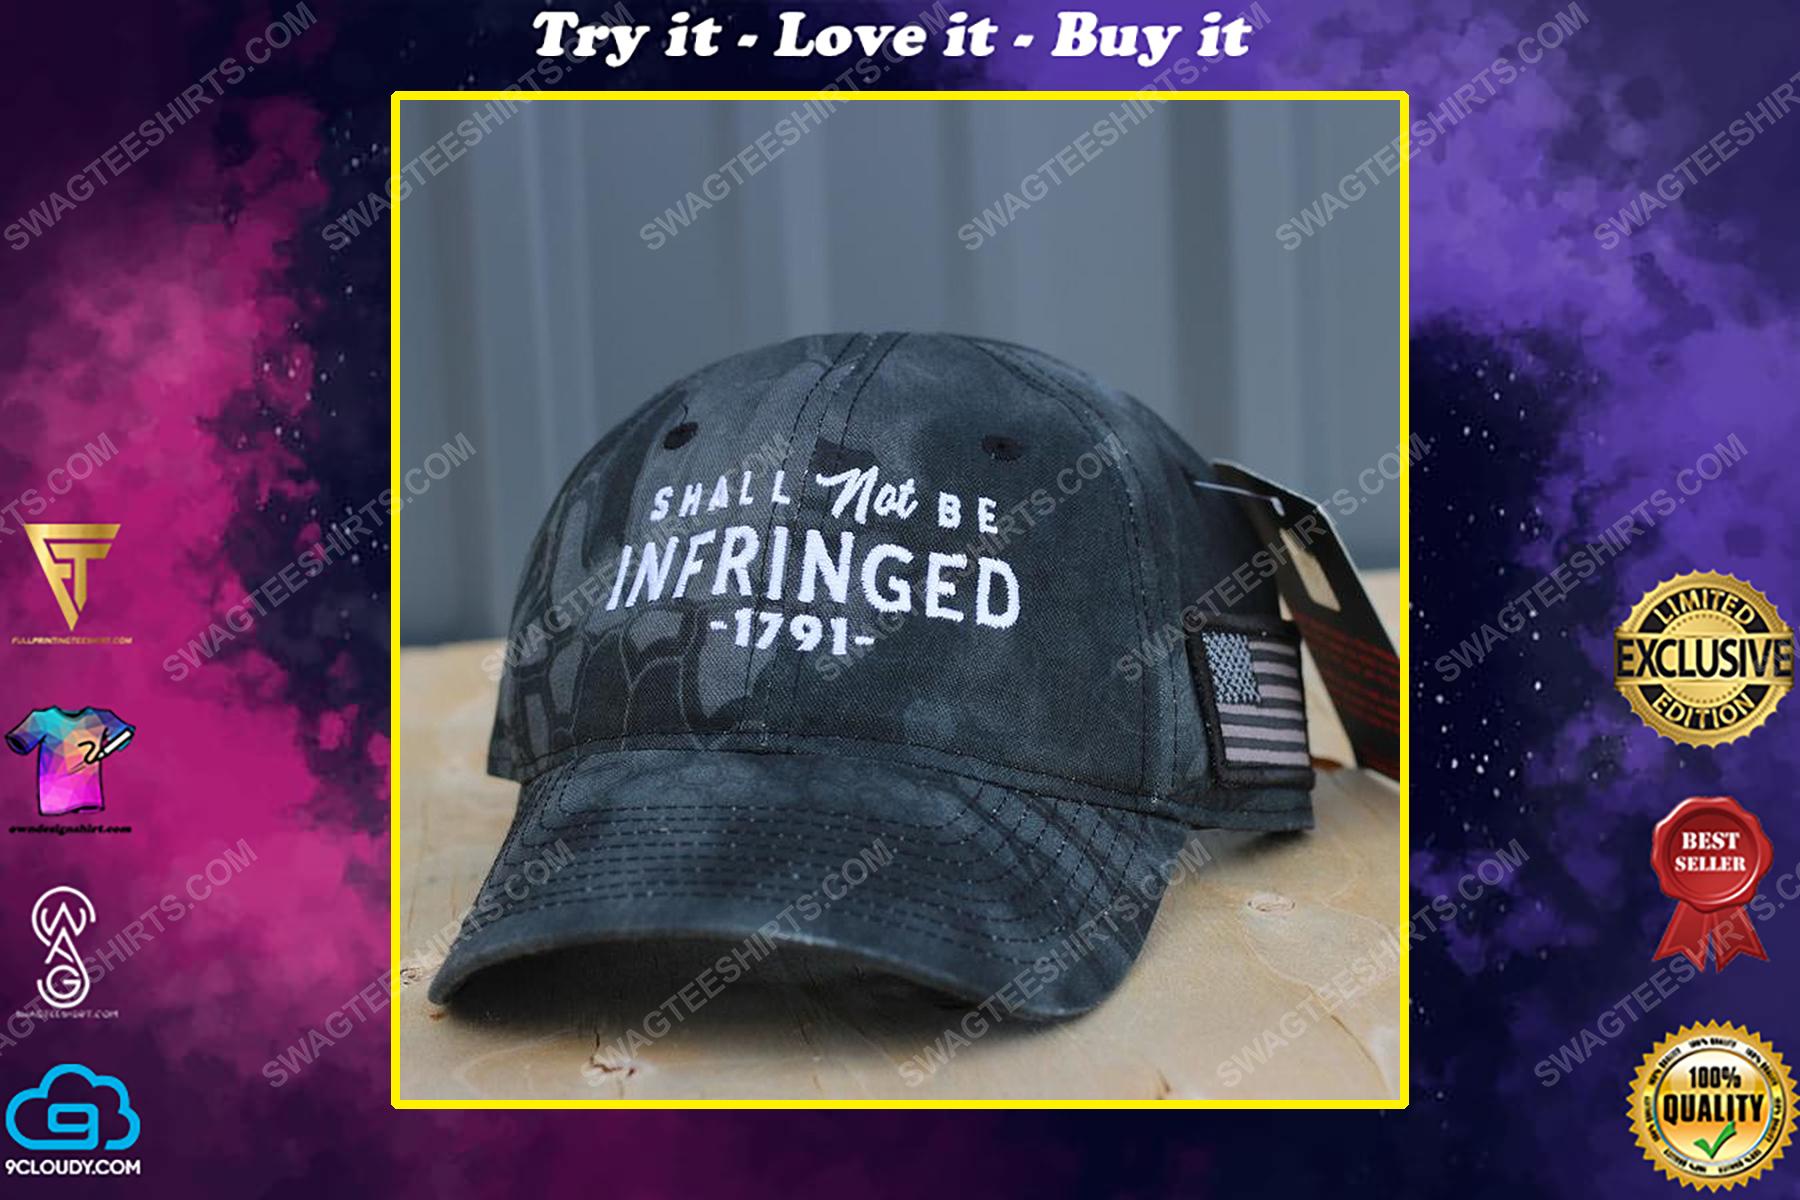 Shall not be infringed full print classic hat